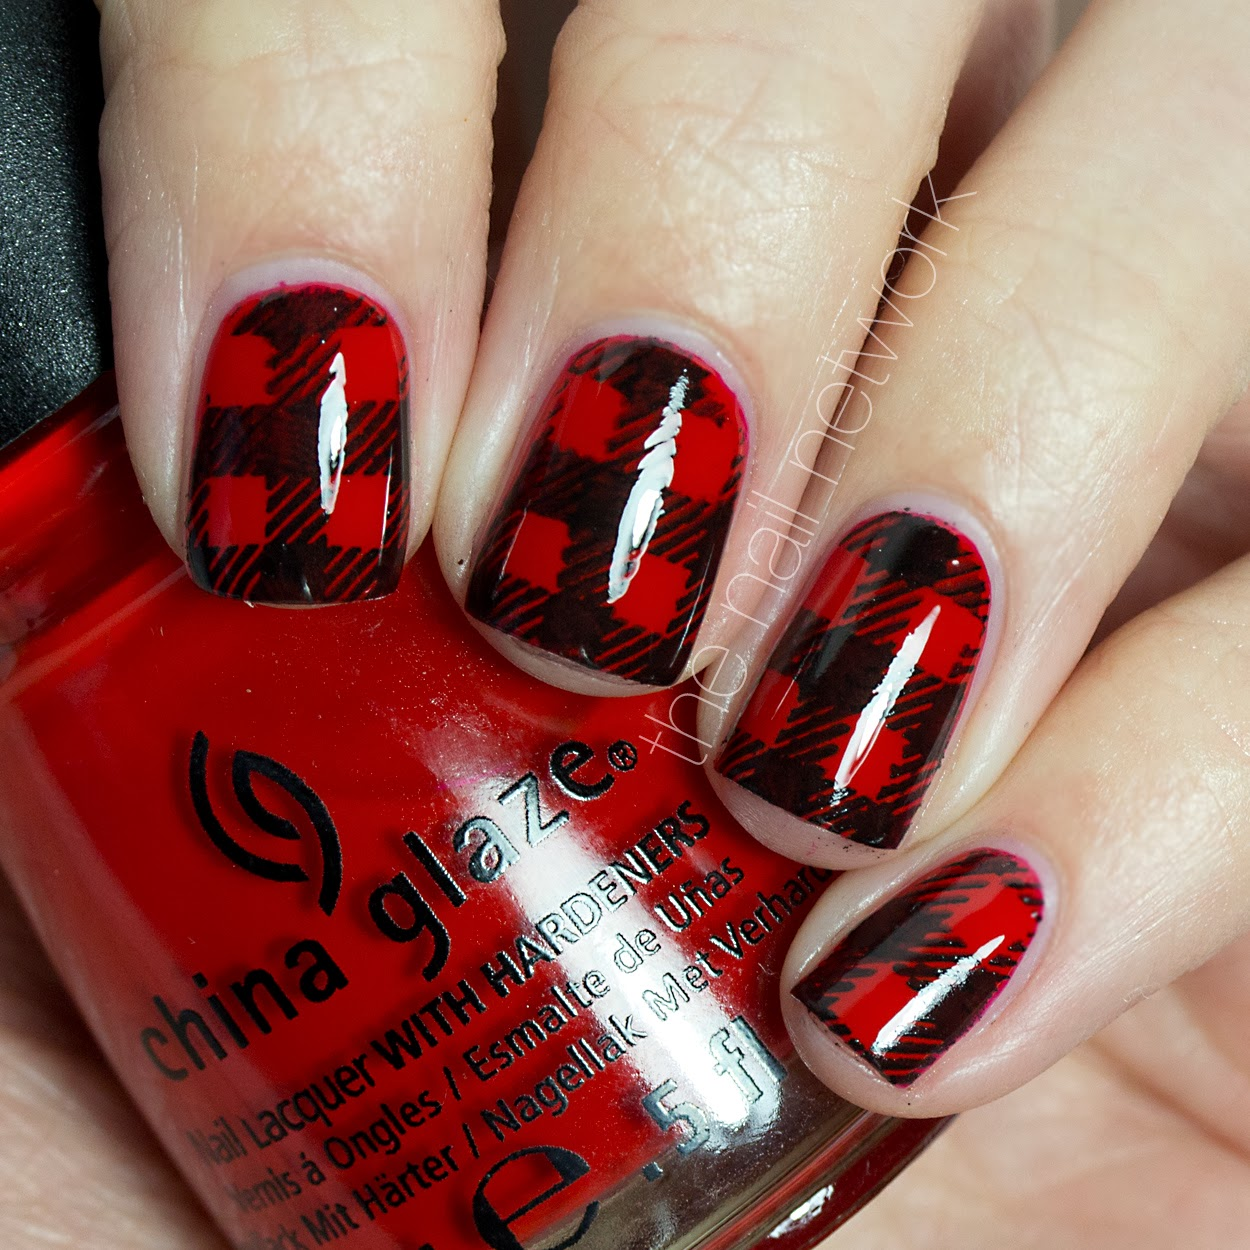 Magnificent Nail Polish To Wear With Red Dress Thin Shades Of Purple Nail Polish Clean Cutest Nail Art How To Start My Own Nail Polish Line Young Foot Nails Fungus GrayWhere To Buy Opi Gelcolor Nail Polish The Nail Network: TDOCNAS: Day 2: Buffalo Plaid Nail Art